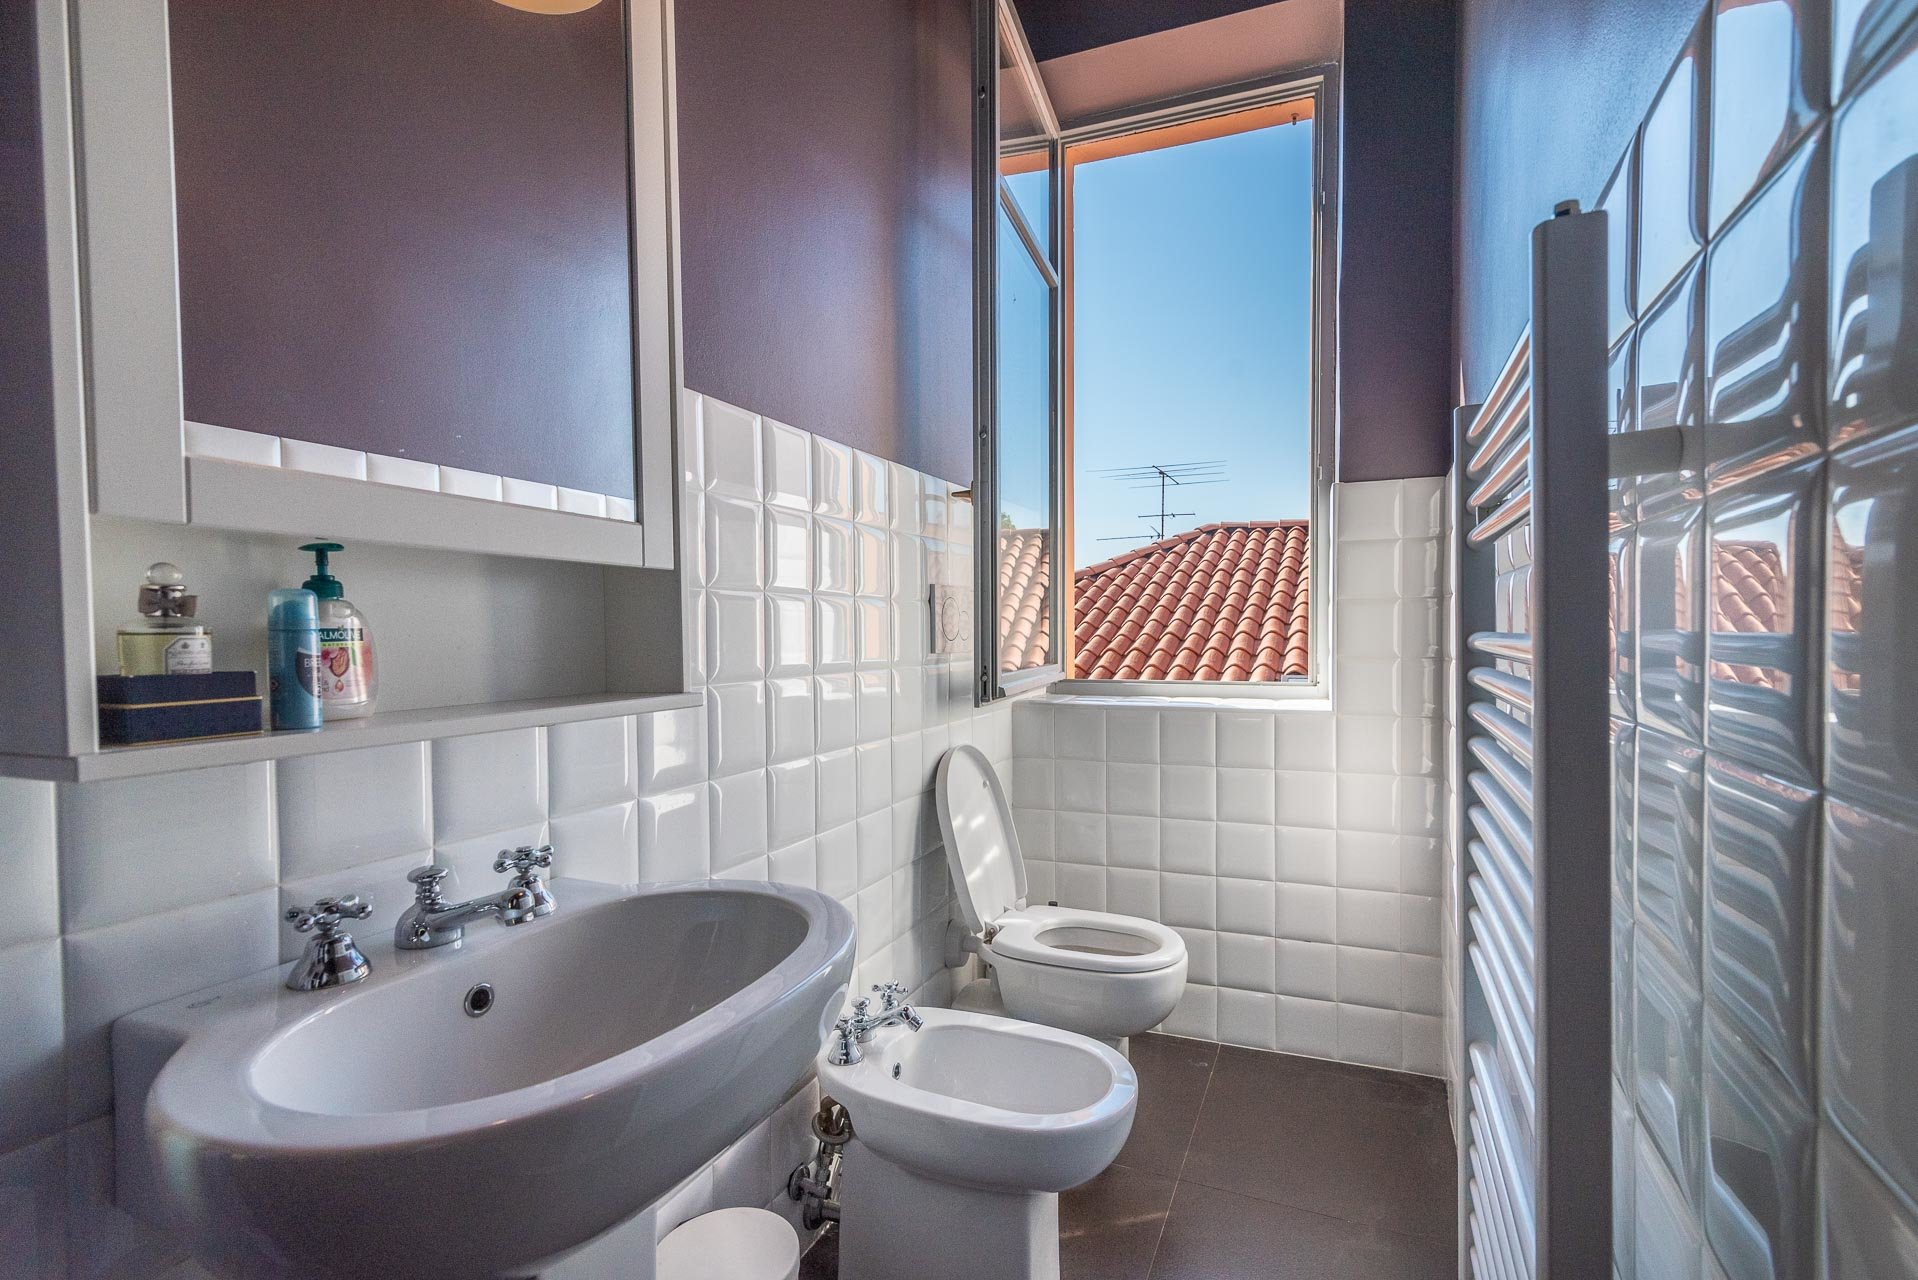 Lesa, apartment for sale on the lakefront - restroom